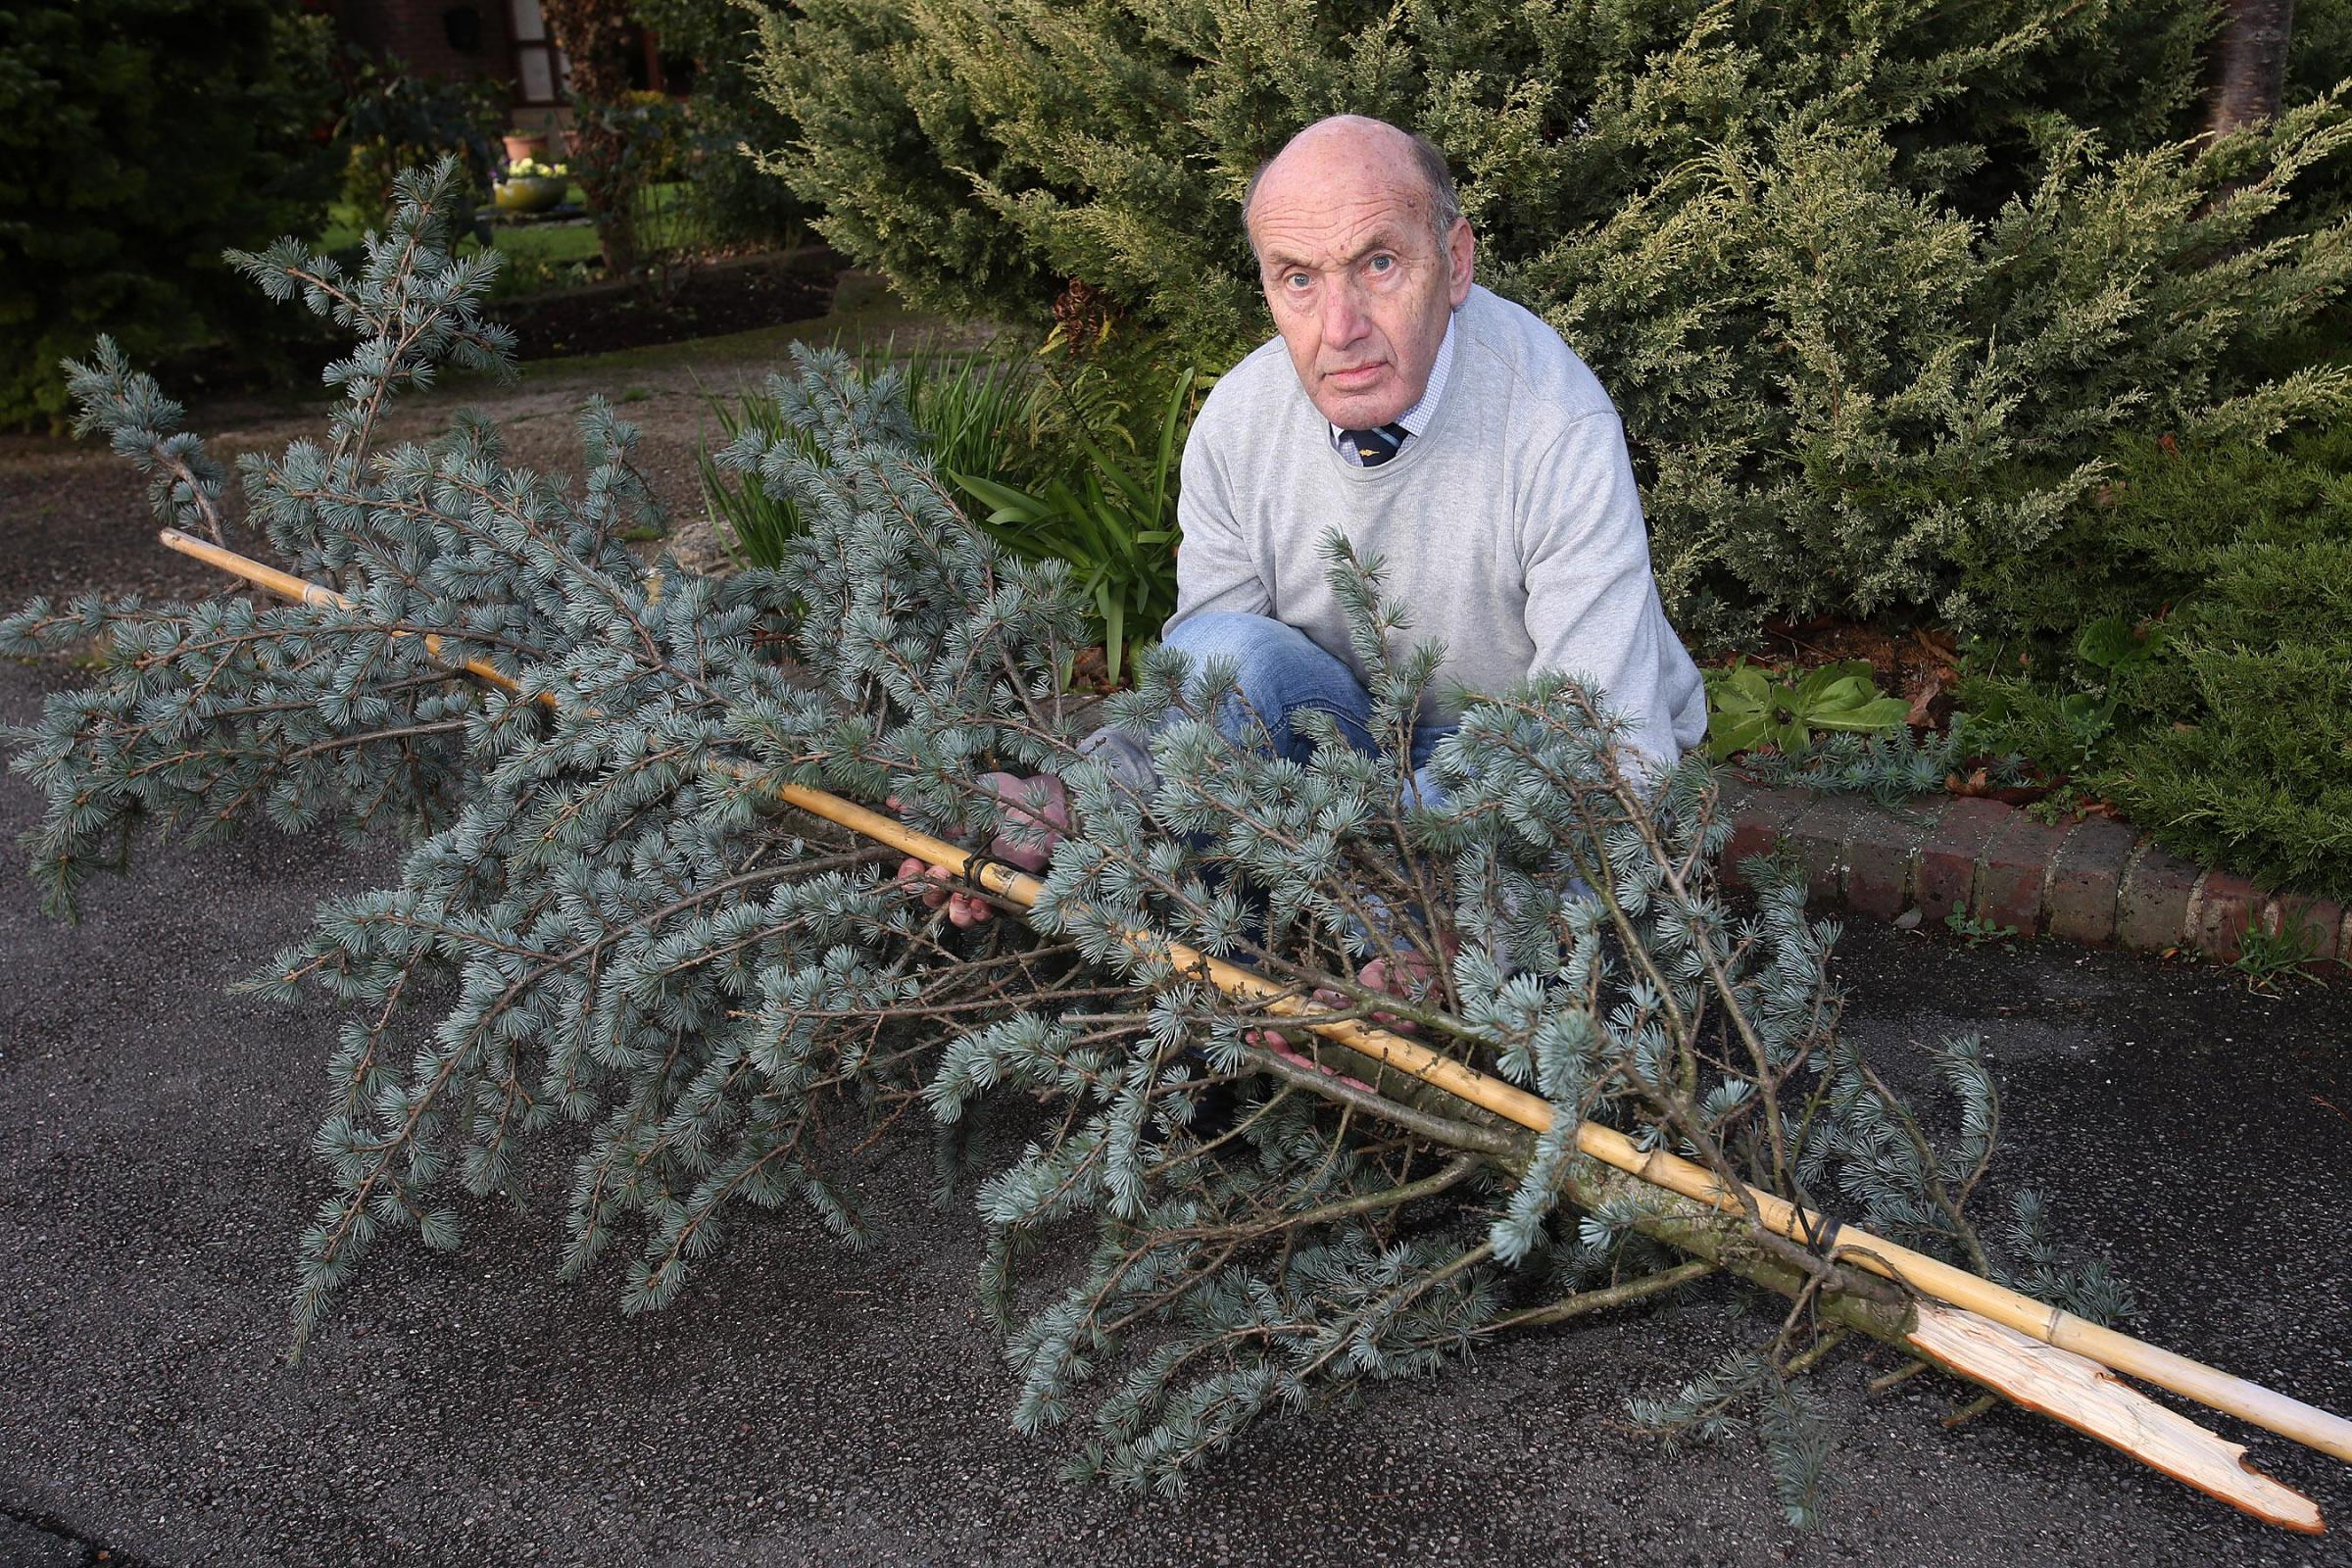 Ken Smith has had his wife's memorial tree returned